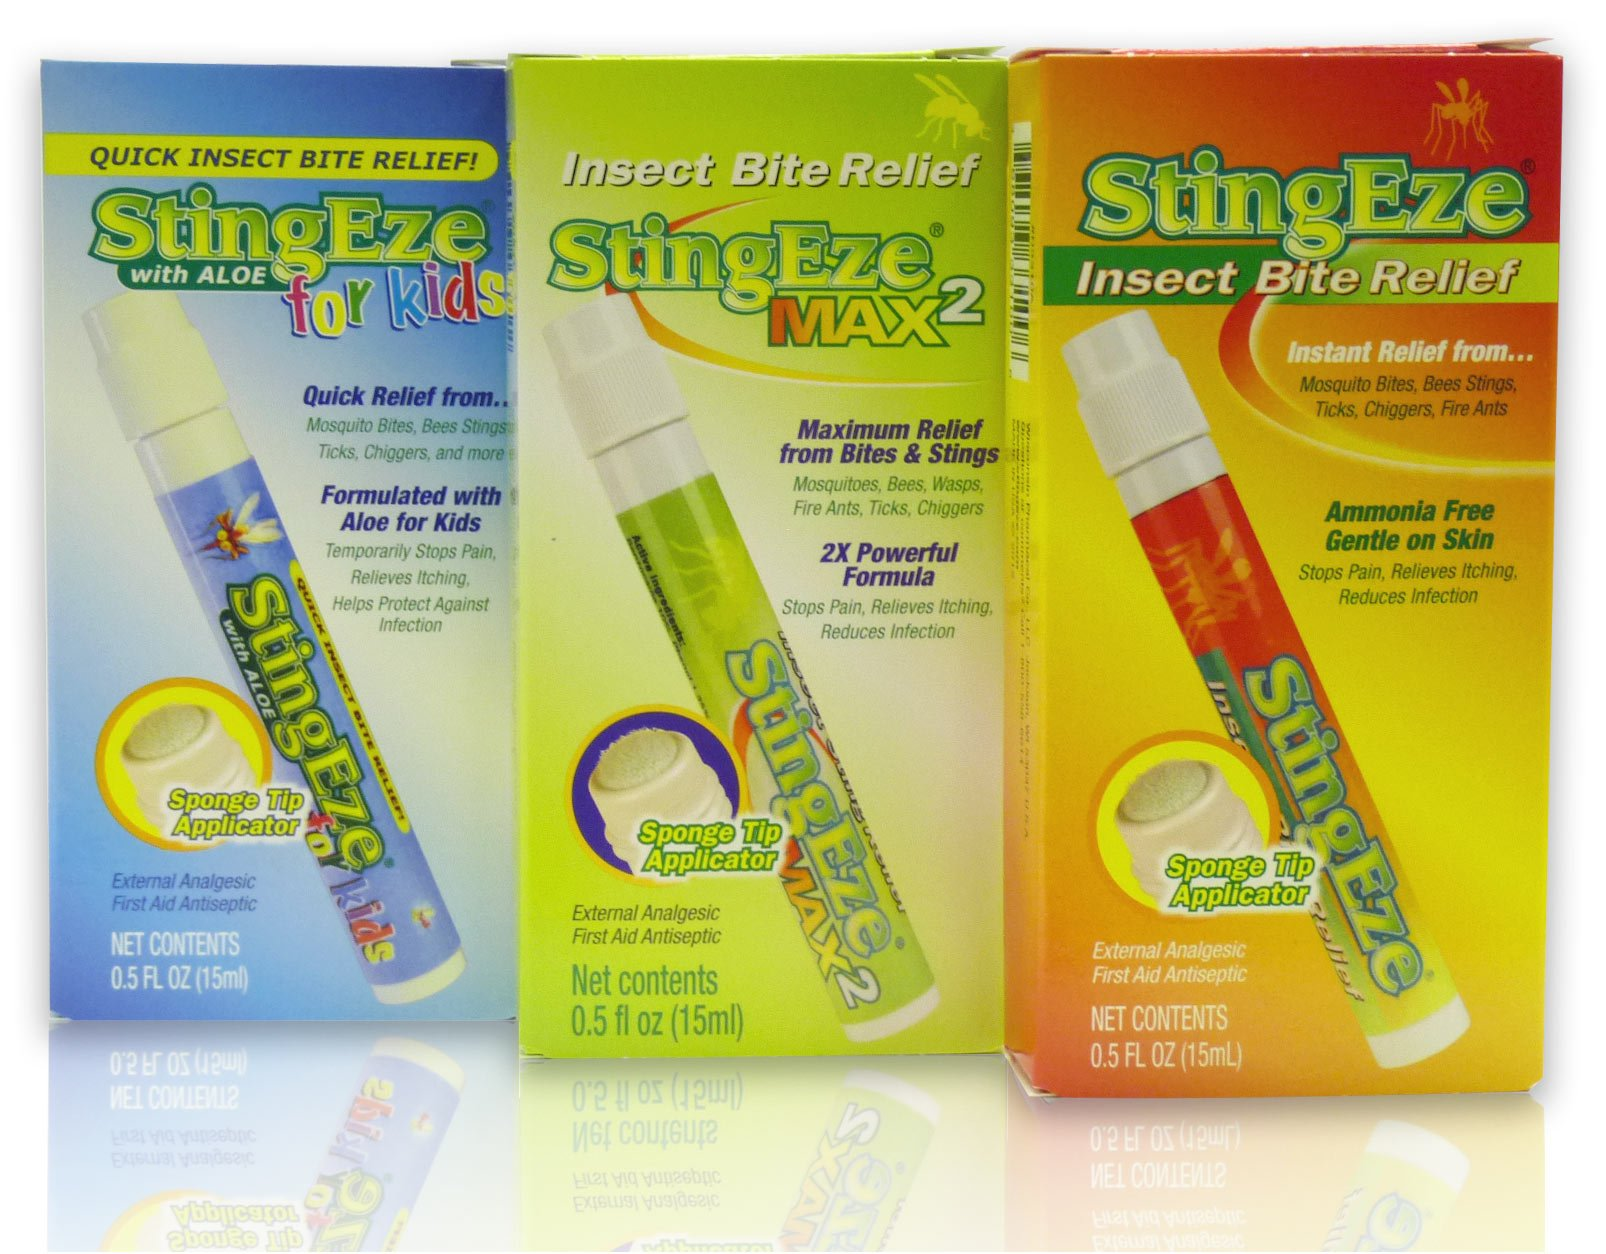 StingEze Original Insect Bite Itch Relief Dauber, 0.5 Ounce by StingEze (Image #3)